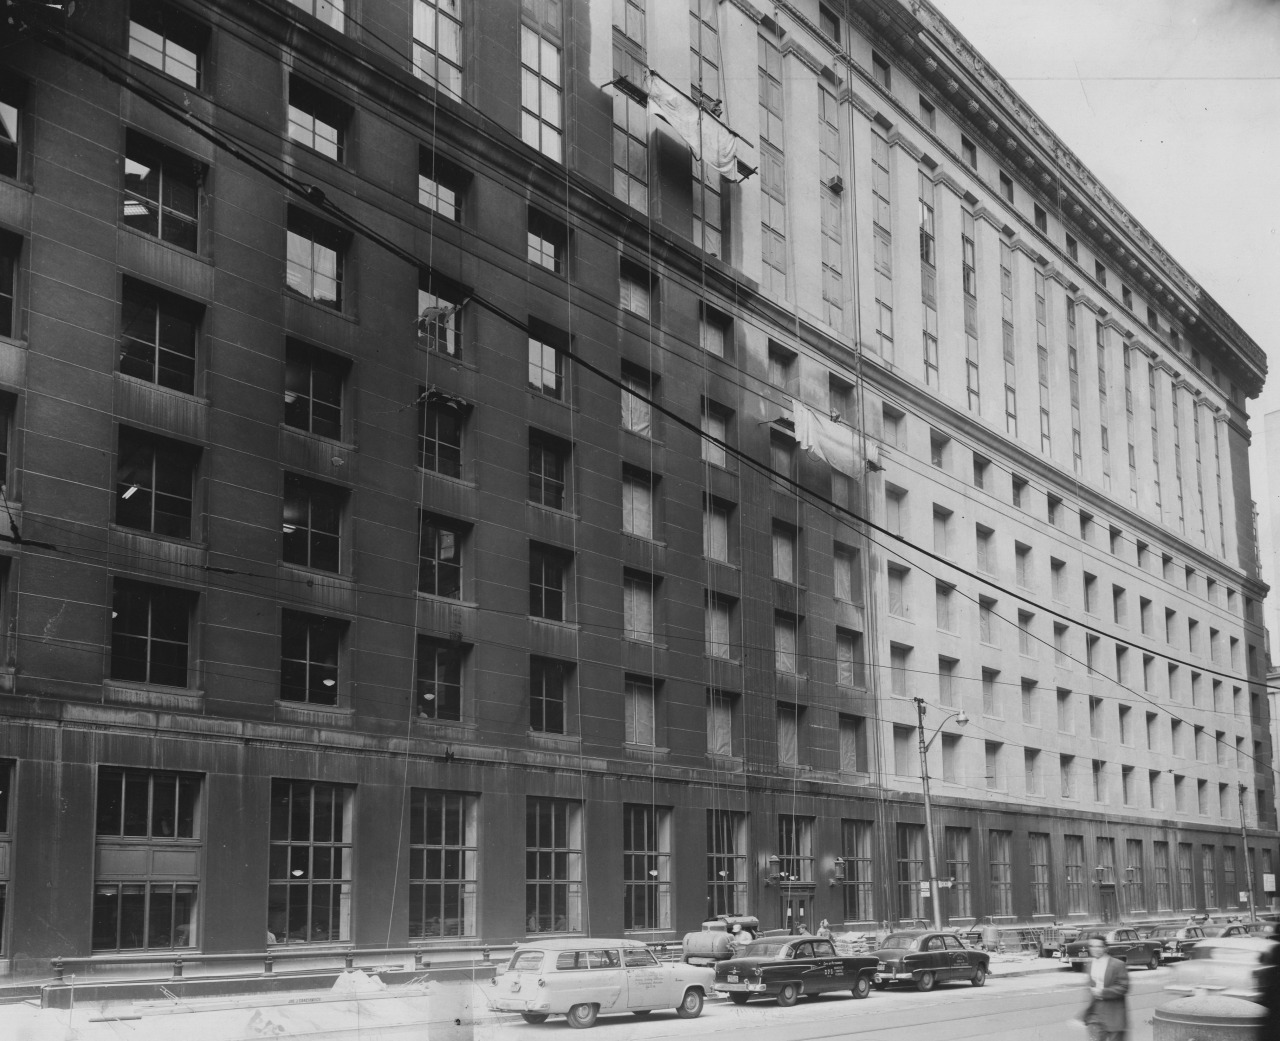 March 15, 1957: As part of the city renaissance, the City-County building needed serious cleaning. (Credit: Handout/Garry's Commercial Photographers)